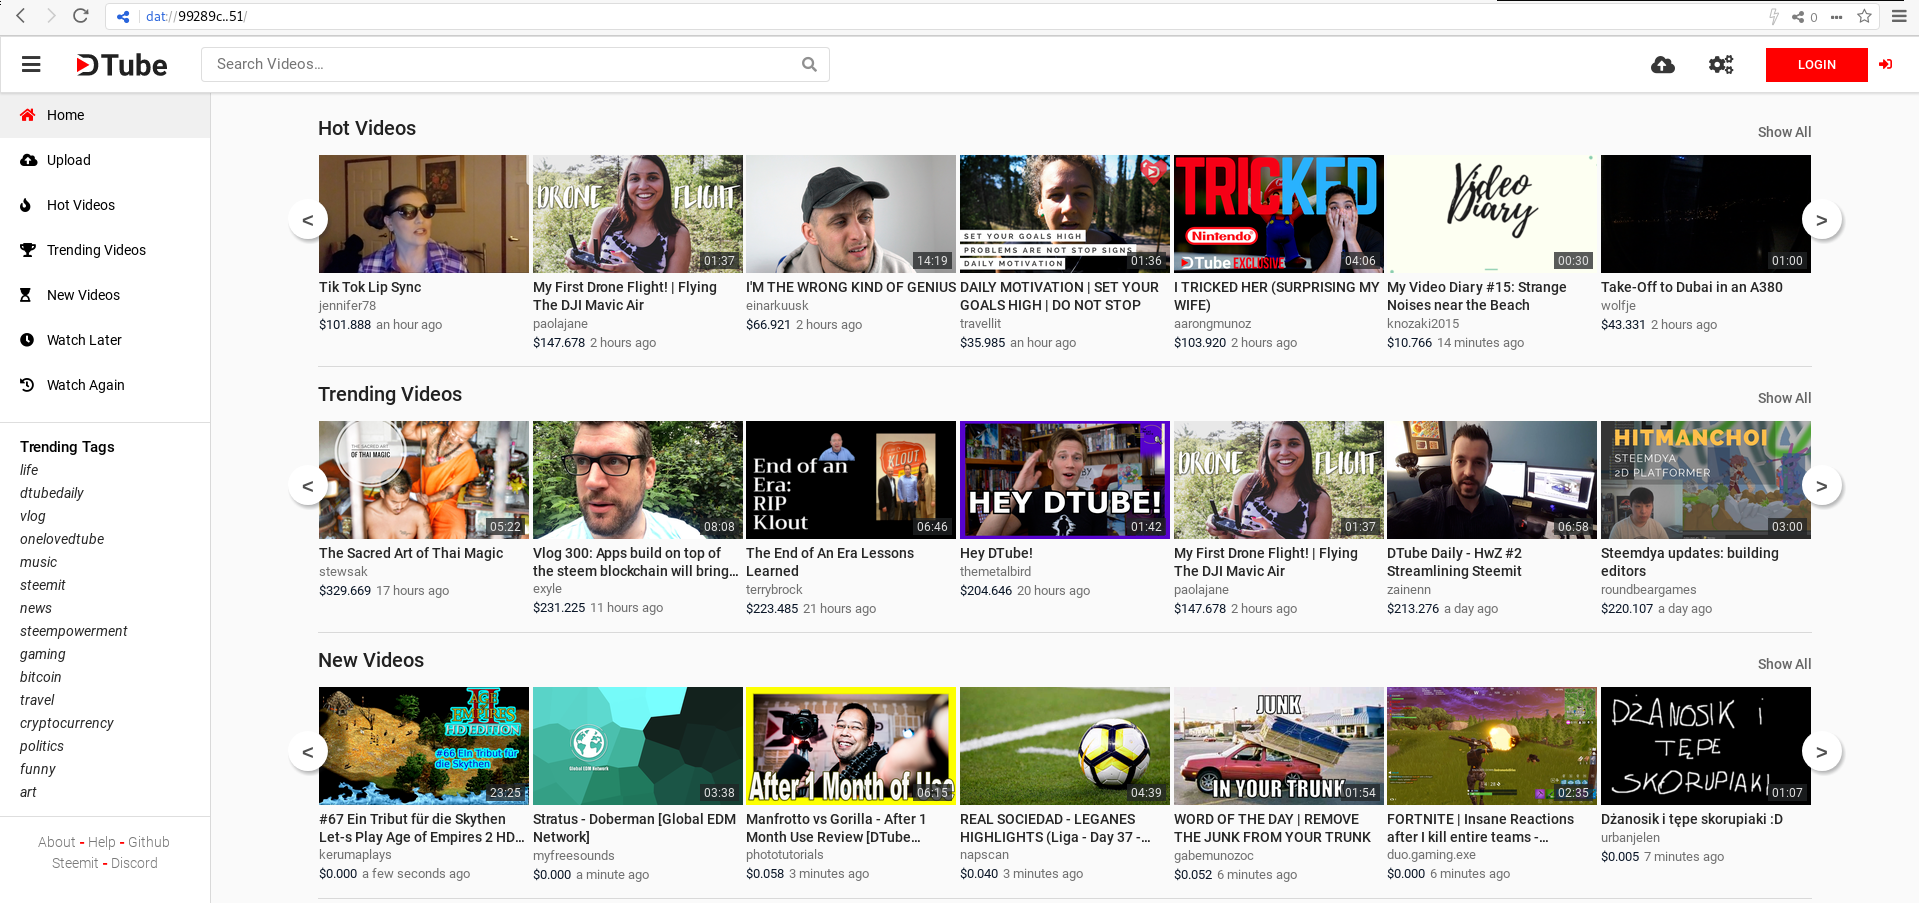 DTube Homepage Preview